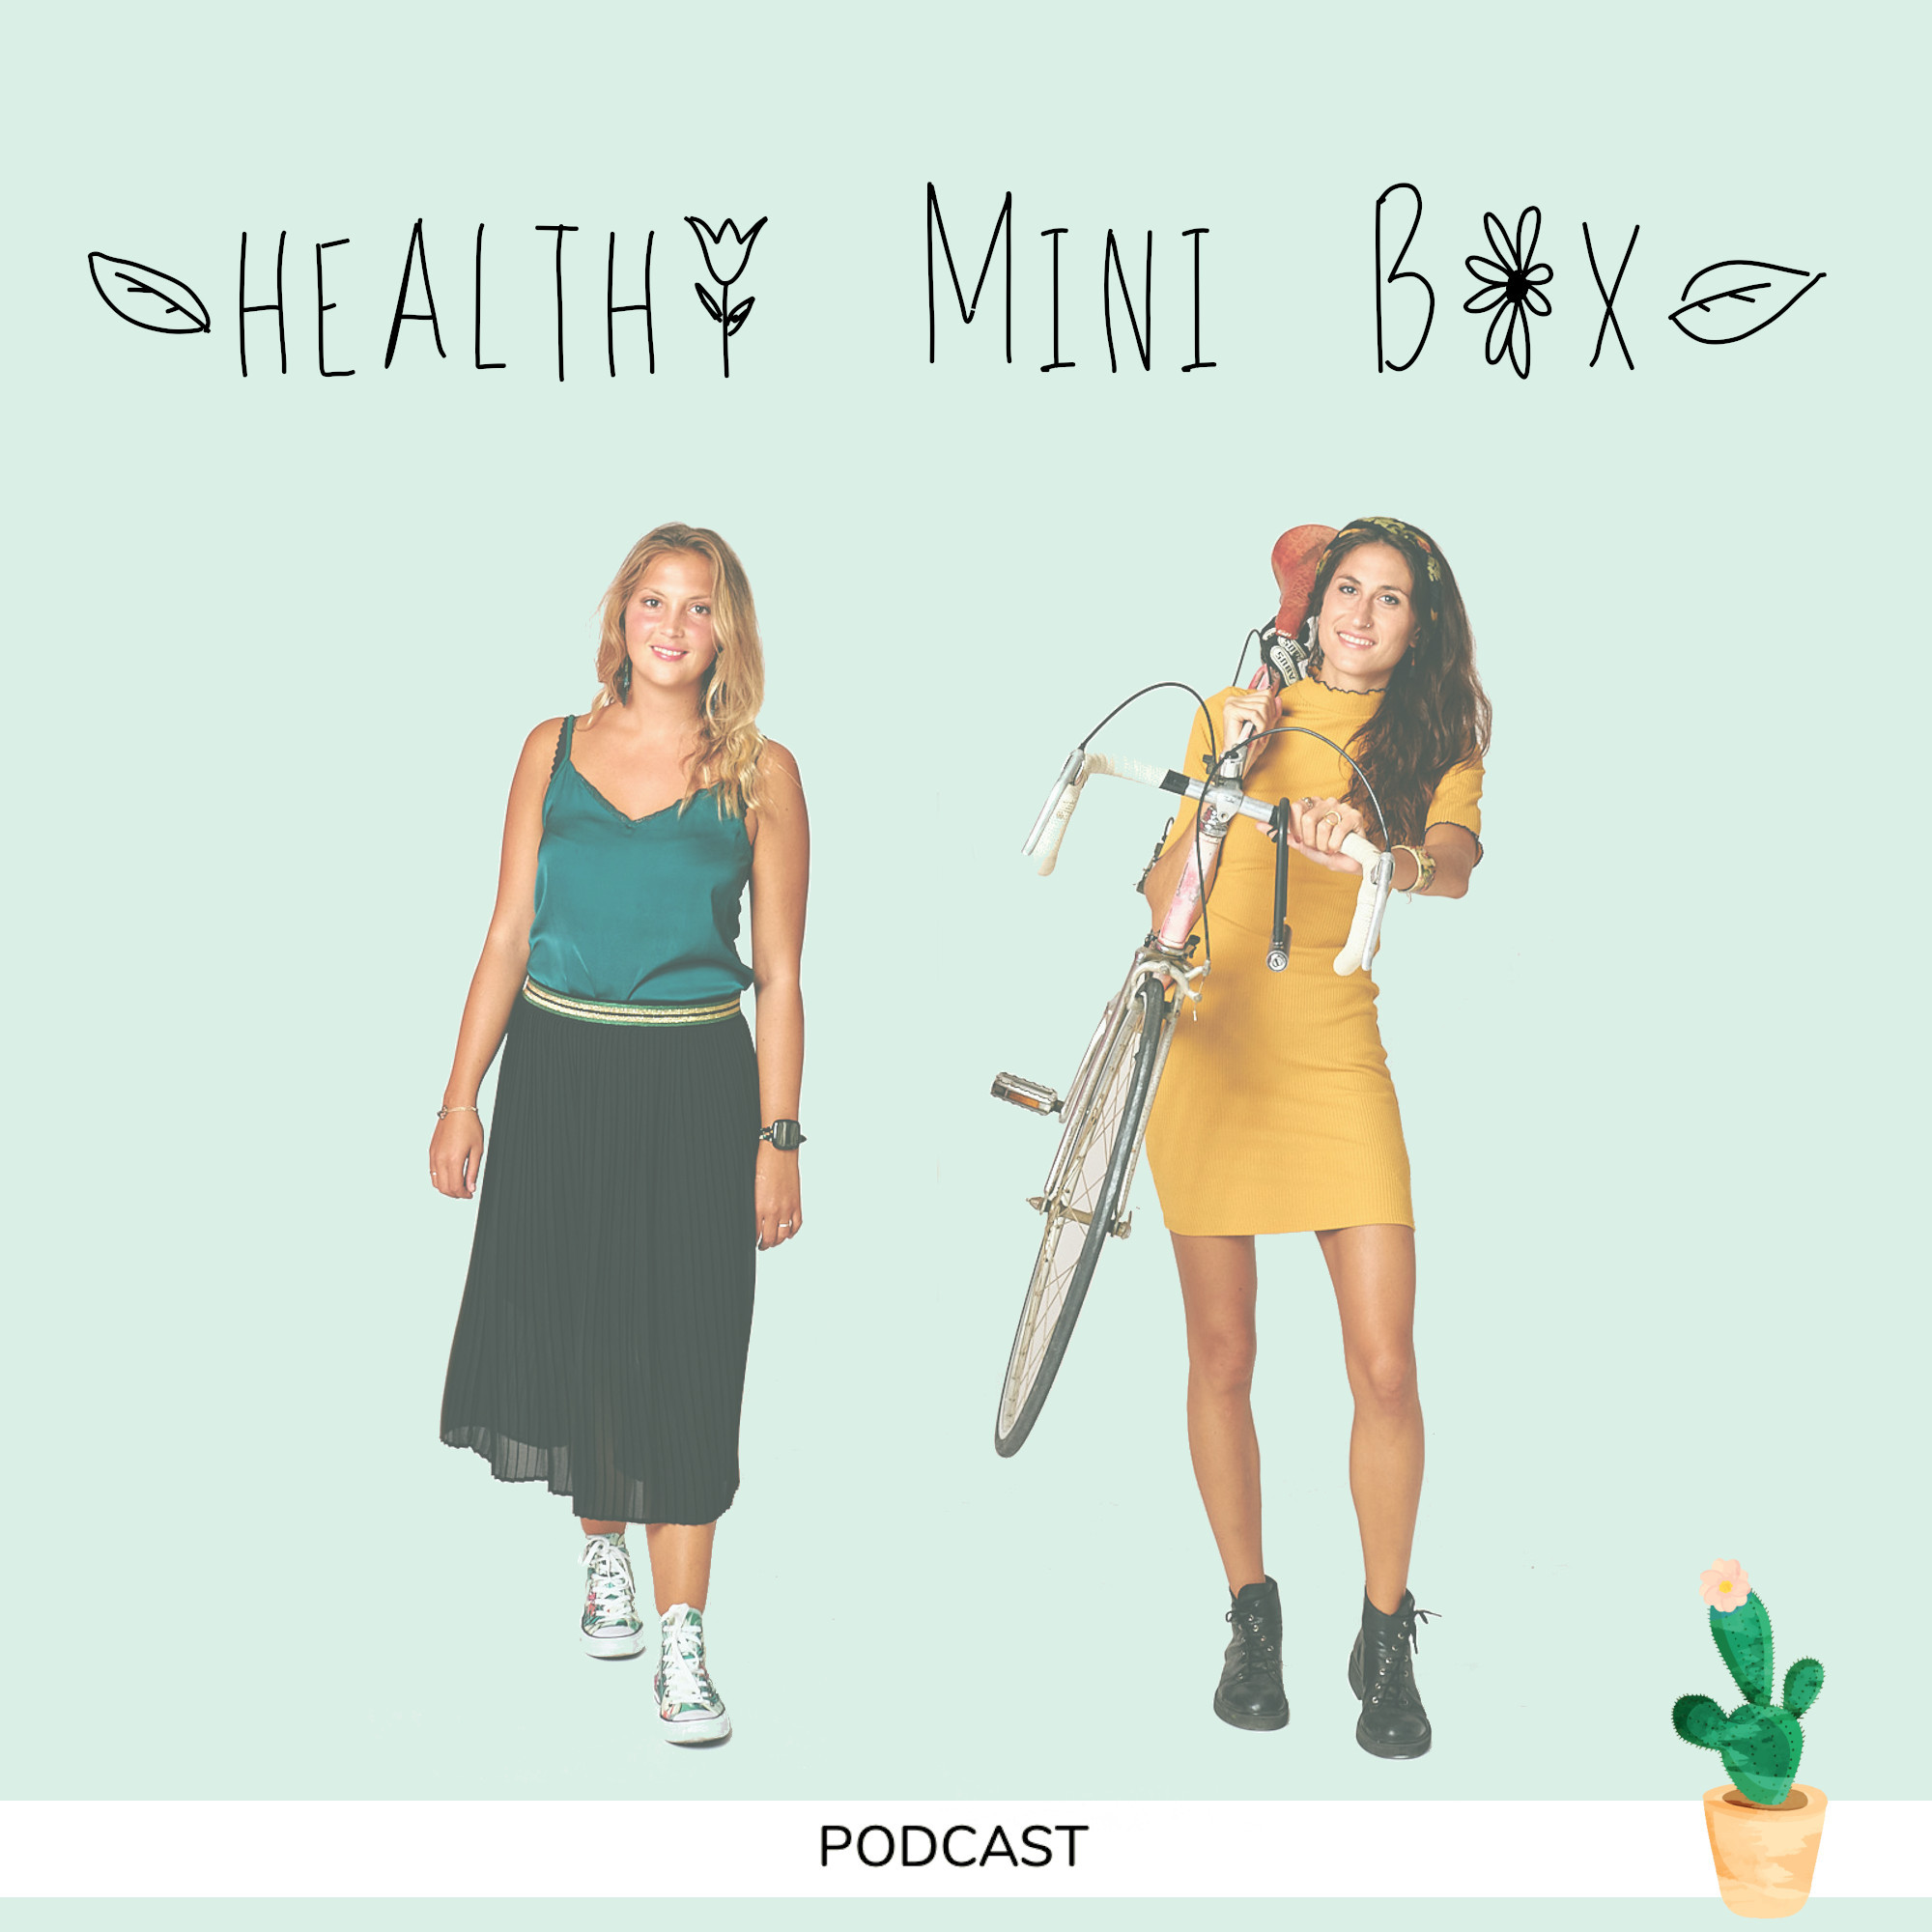 HEALTHY MINI BOX PODCAST